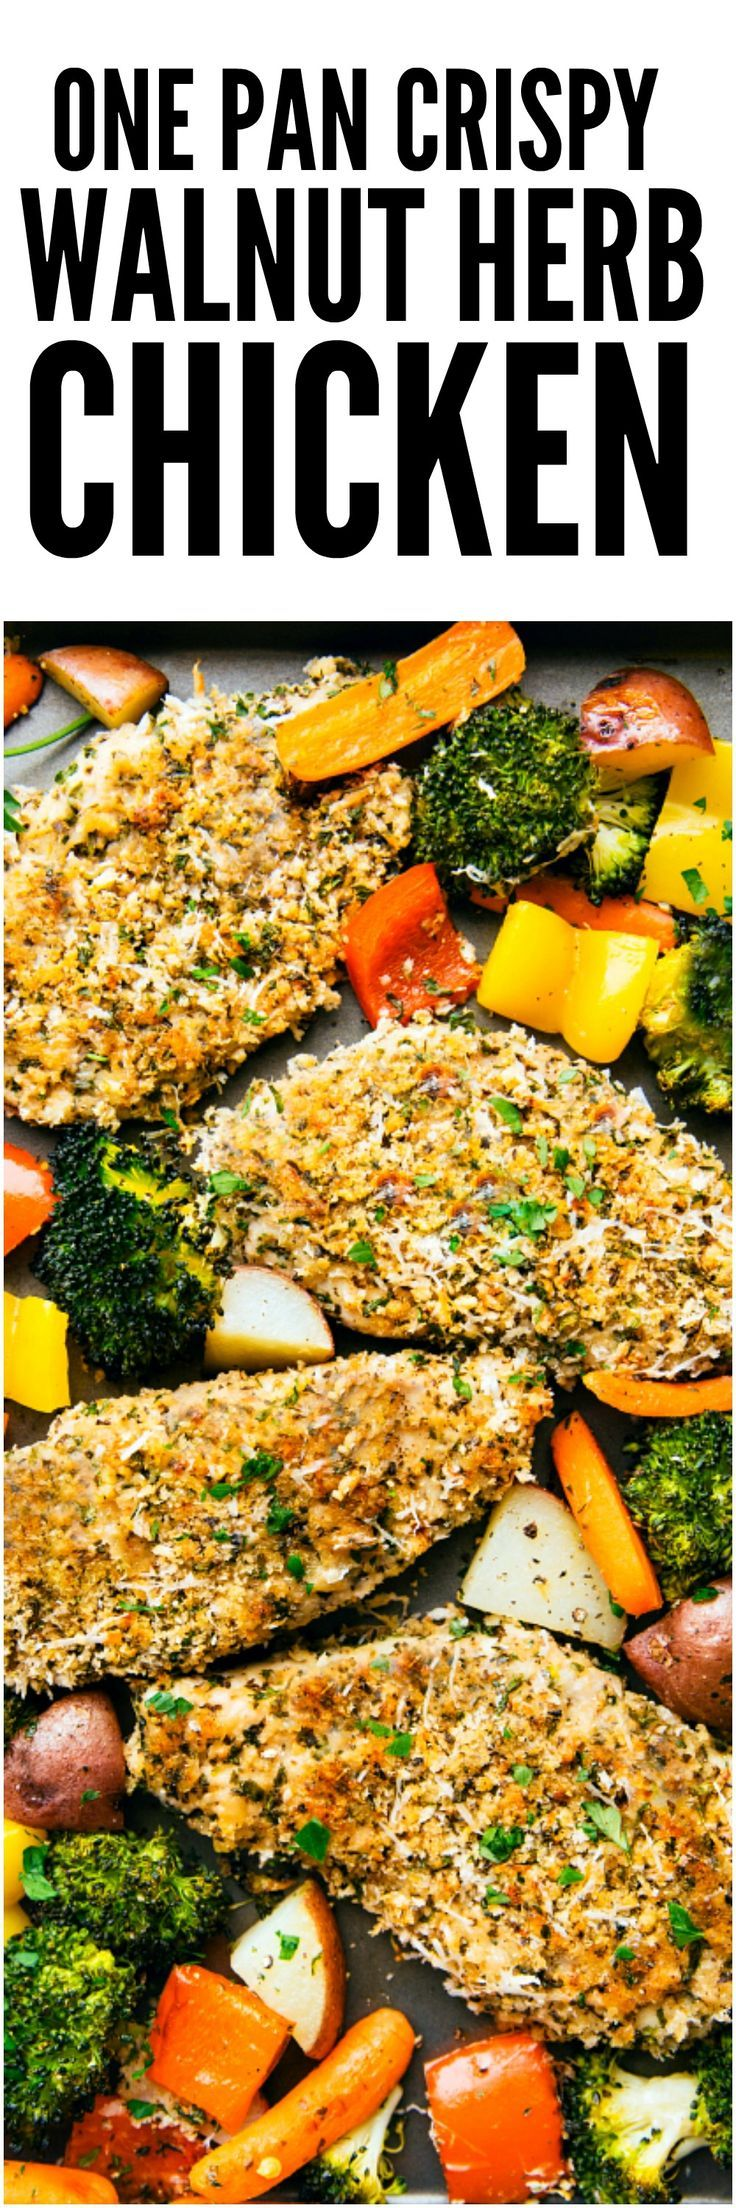 One Pan Crispy Walnut Herb Chicken and Vegetables is a delicious meal all made in one pan! The chicken gets coated with a nutty walnut herb coating and is surrounded by tender veggies. This is sure to be a hit!